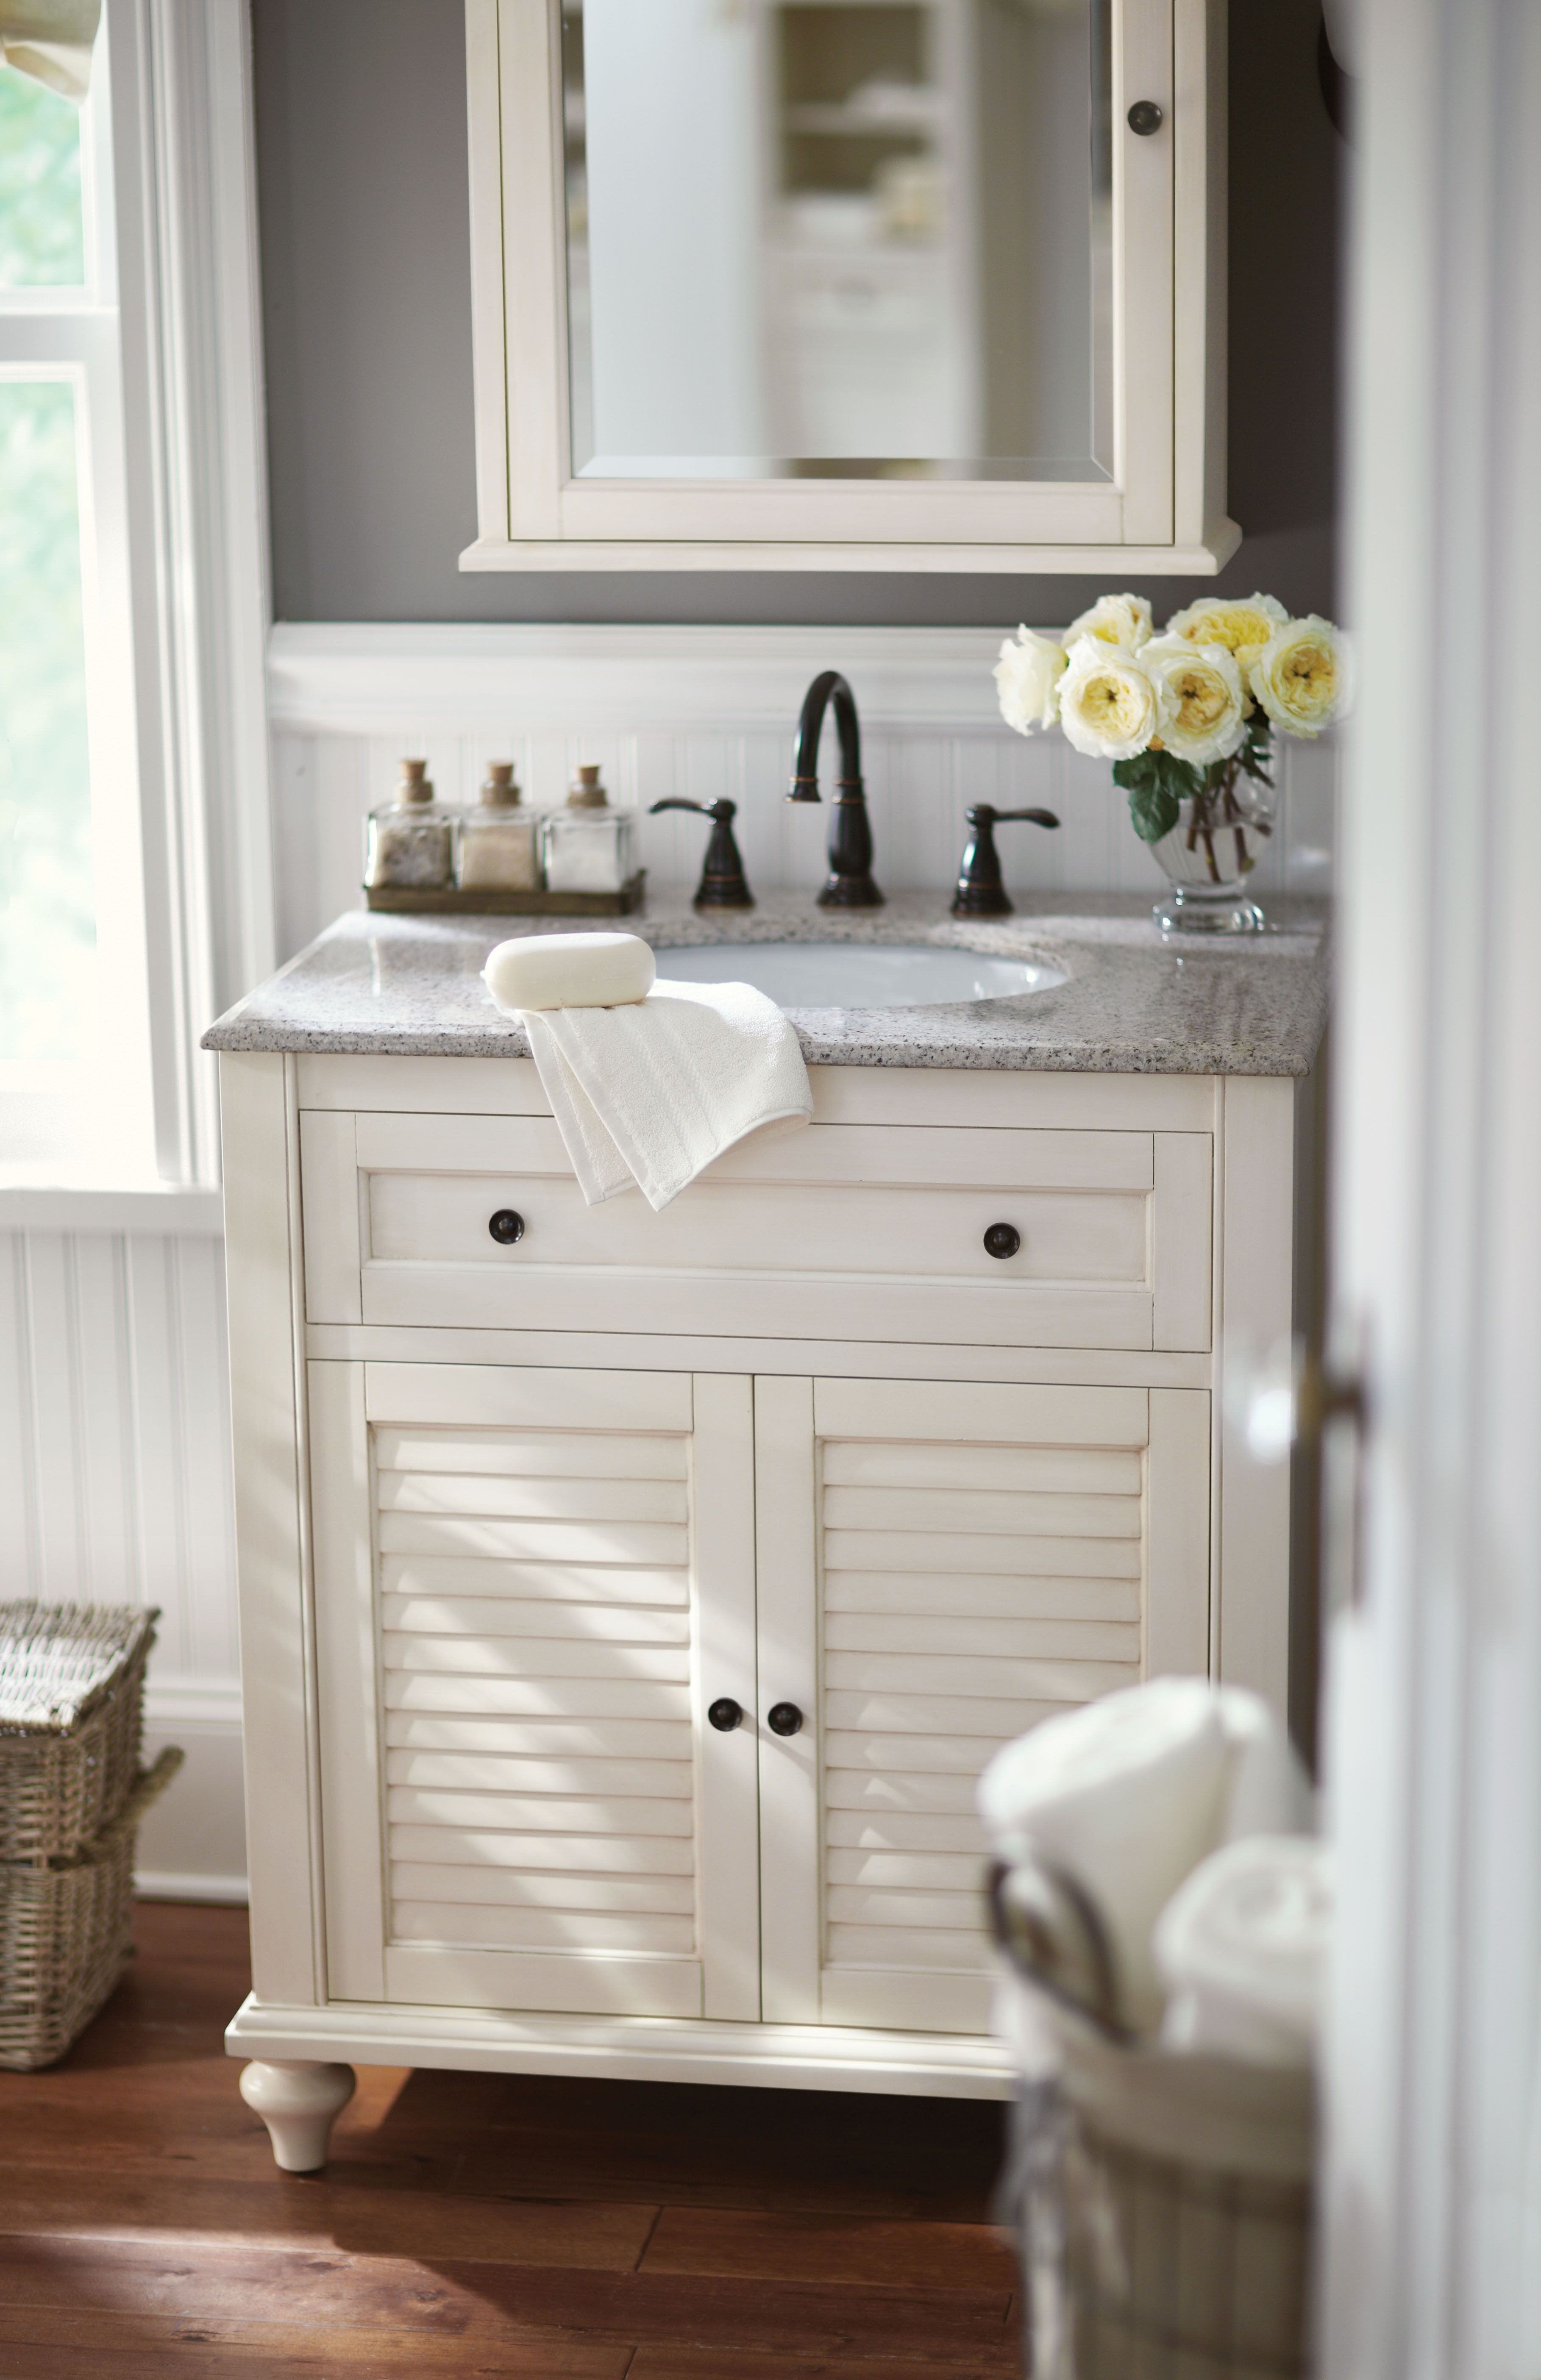 New Small Kitchen Sink Cabinet The Most Stylish In Addition To Lovely Small Kitchen Sink Cabinet Regarding Motivate The House Exi Furniture Desain Kemewahan